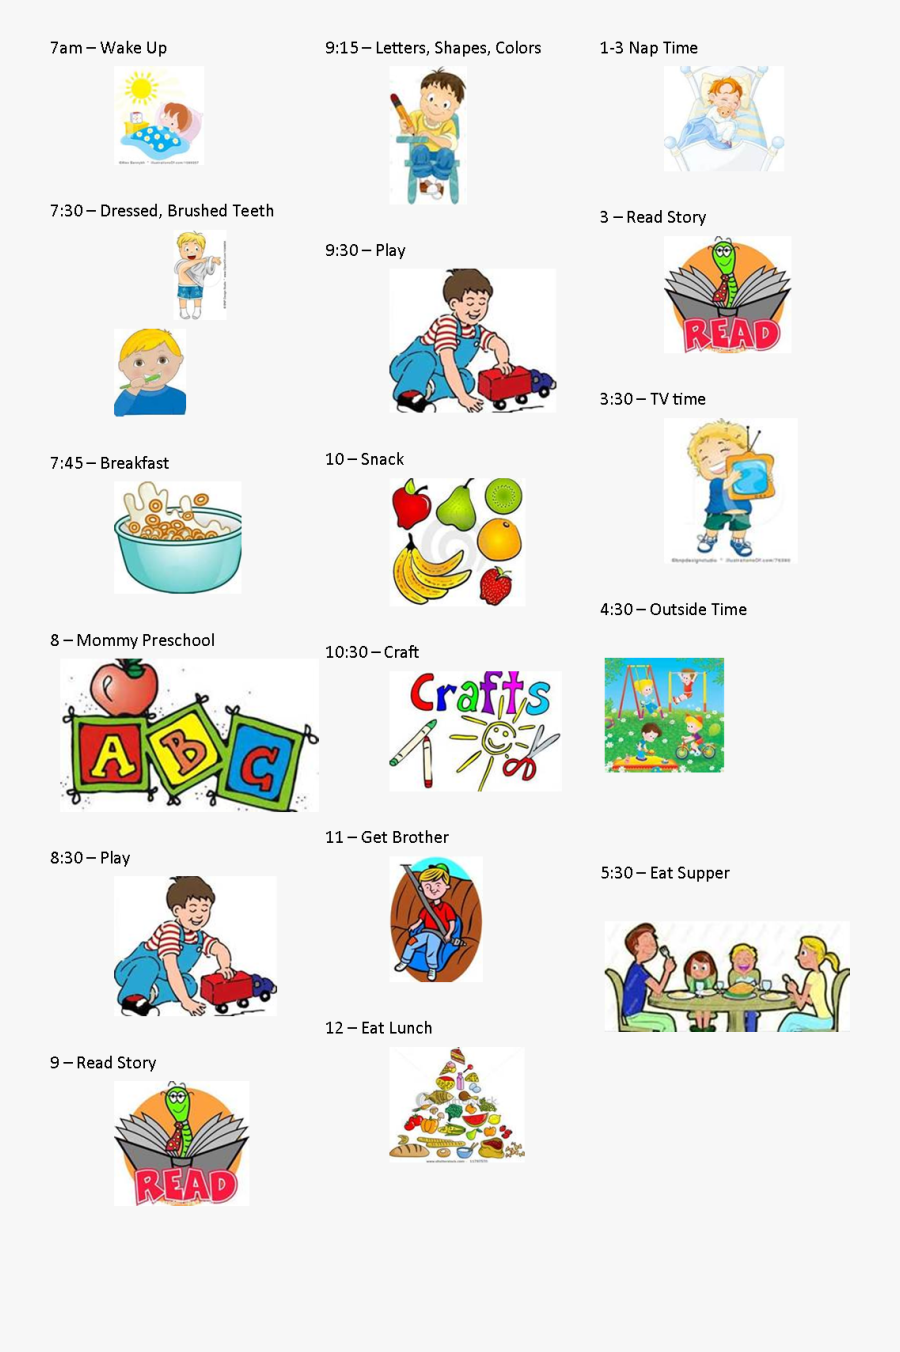 Chore Clipart Home Chore - Word Chores - Png Download (#3403990) -  PinClipart